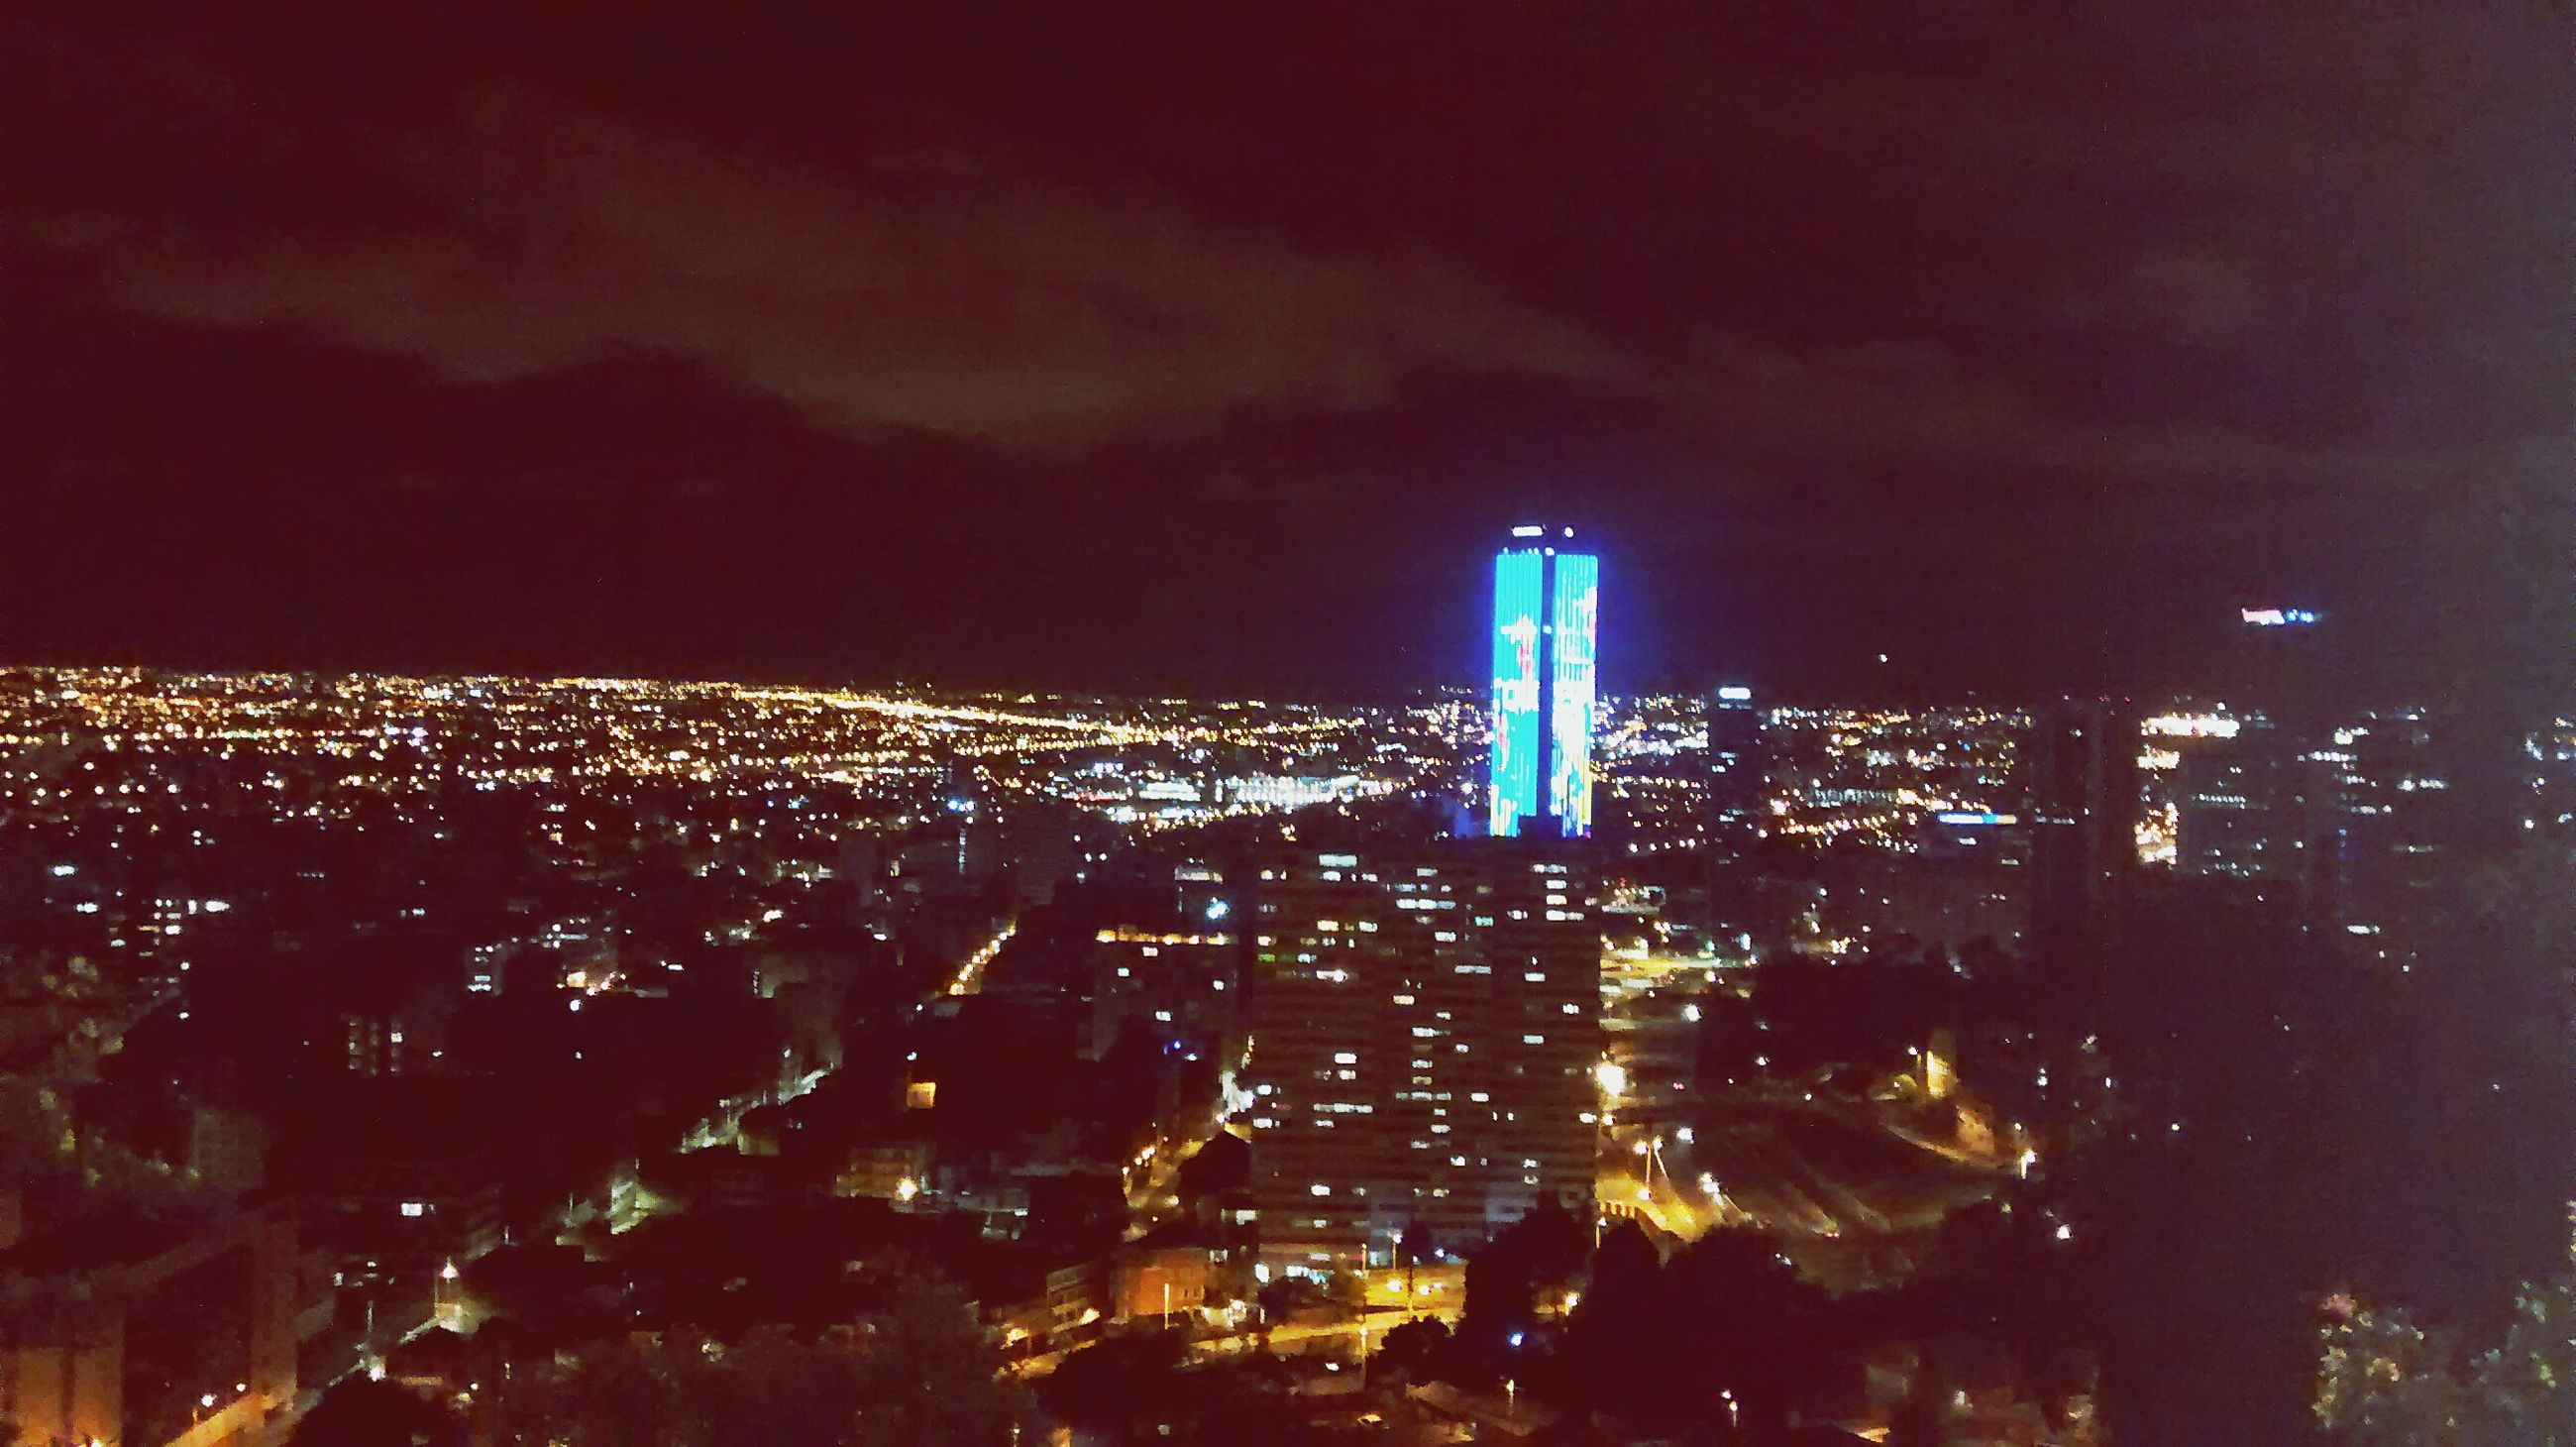 illuminated, night, city, building exterior, architecture, cityscape, built structure, sky, crowded, skyscraper, tower, modern, tall - high, residential district, office building, high angle view, residential building, city life, urban skyline, residential structure